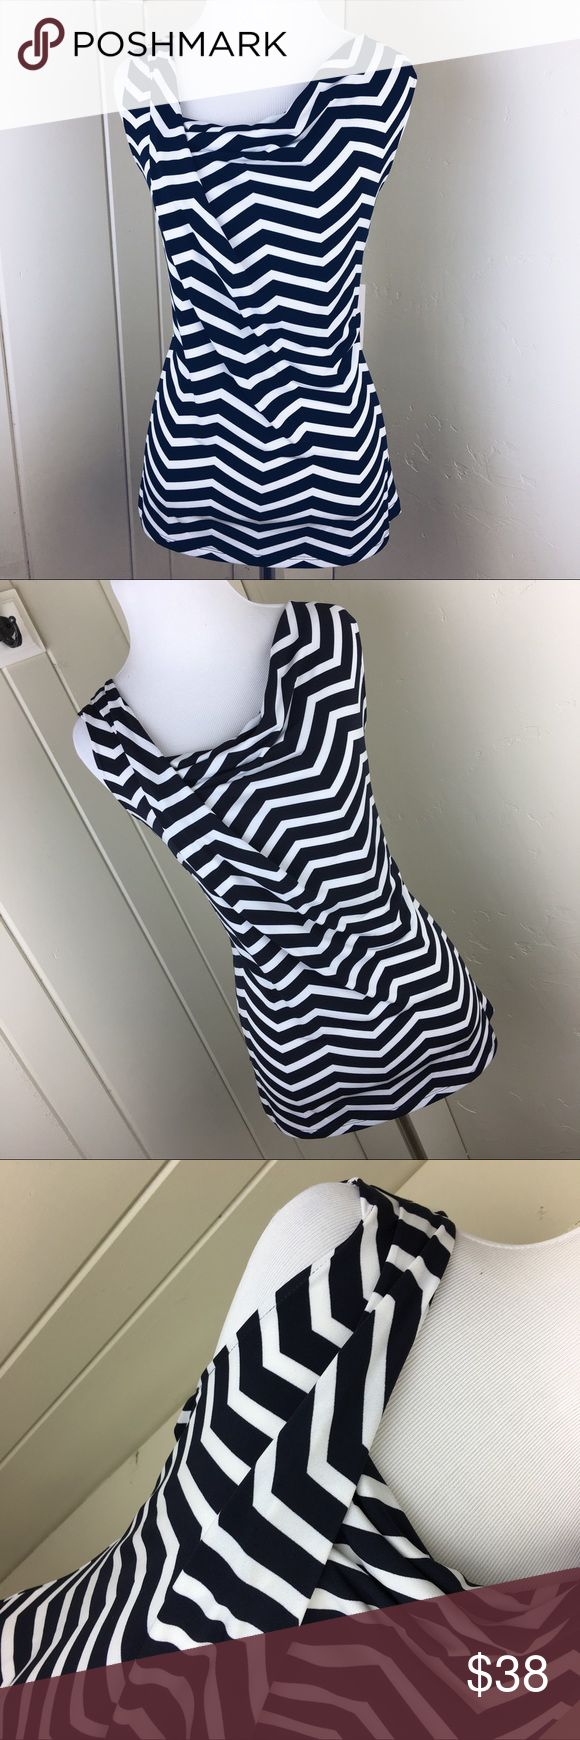 Ivanka Trump navy blue and white chevron blouse Brand new with tags. Super adorable and an awesome dressy blouse. Size medium. Ivanka Trump navy blue and white chevron blouse. Ivanka Trump Tops Blouses